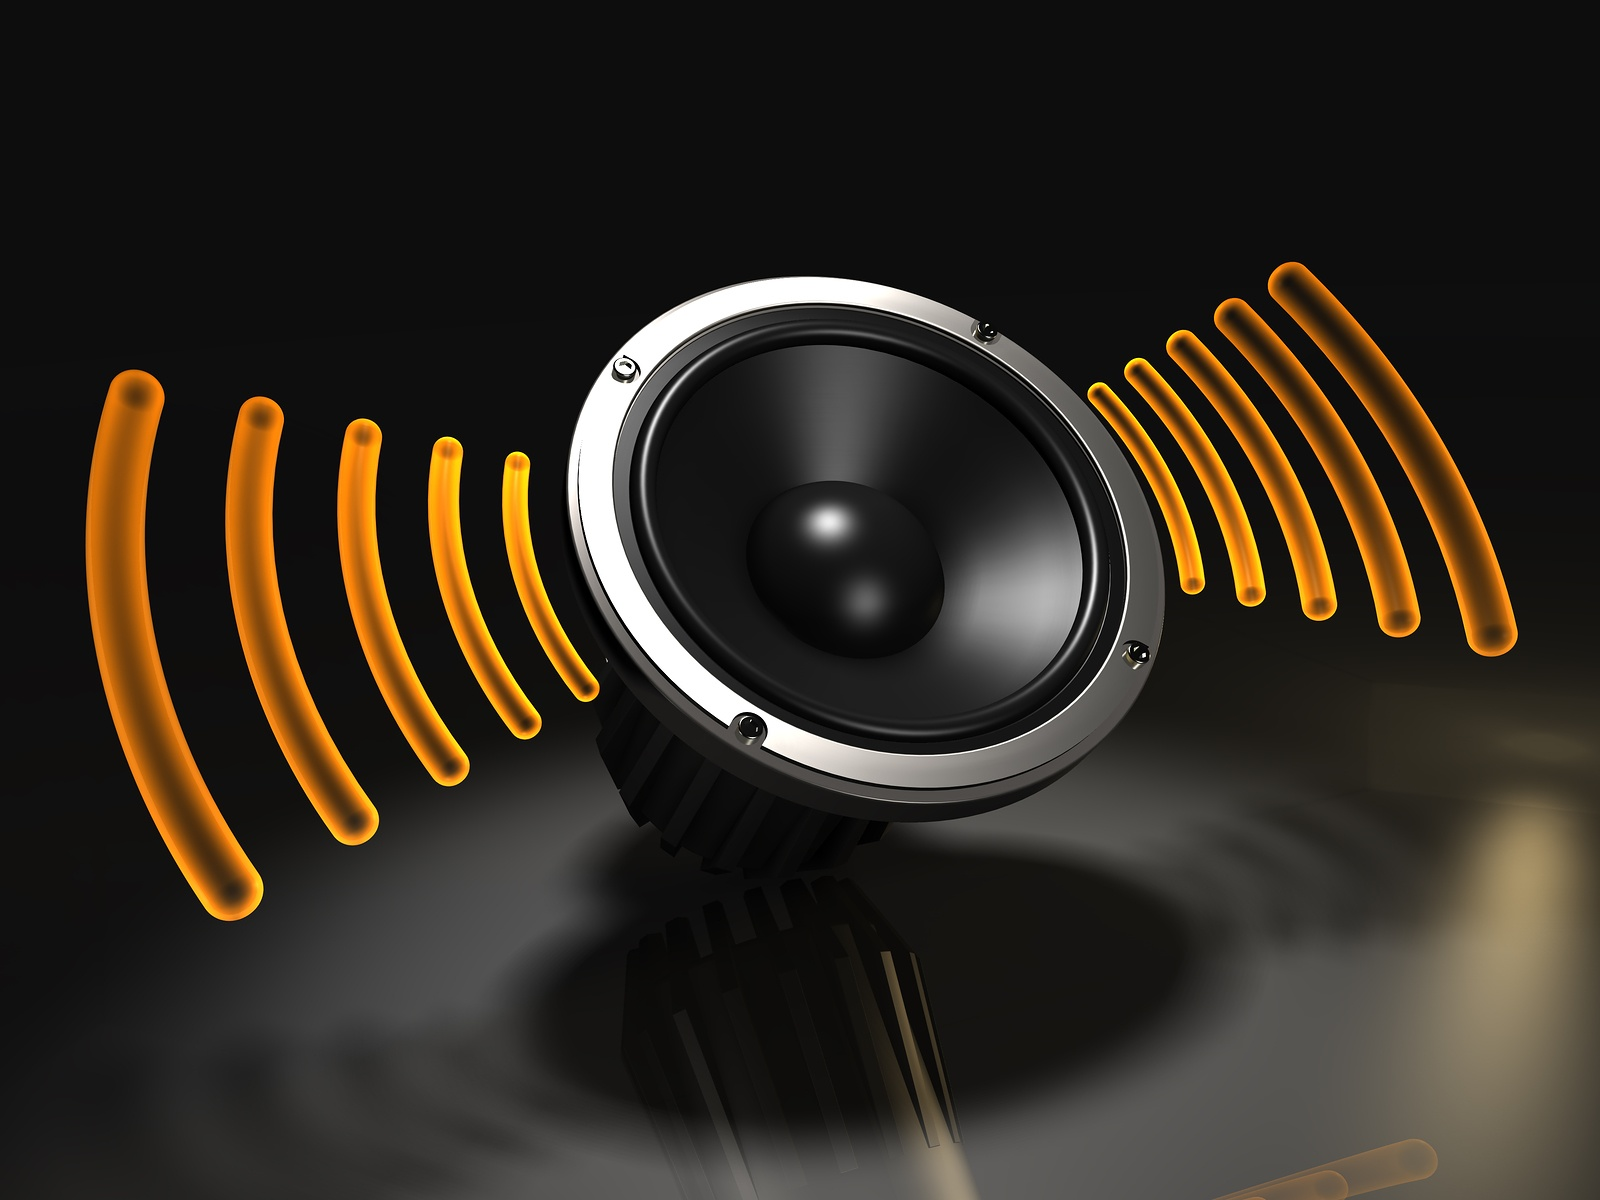 1600x1200 sound waves wallpaper  music and dance wallpapers